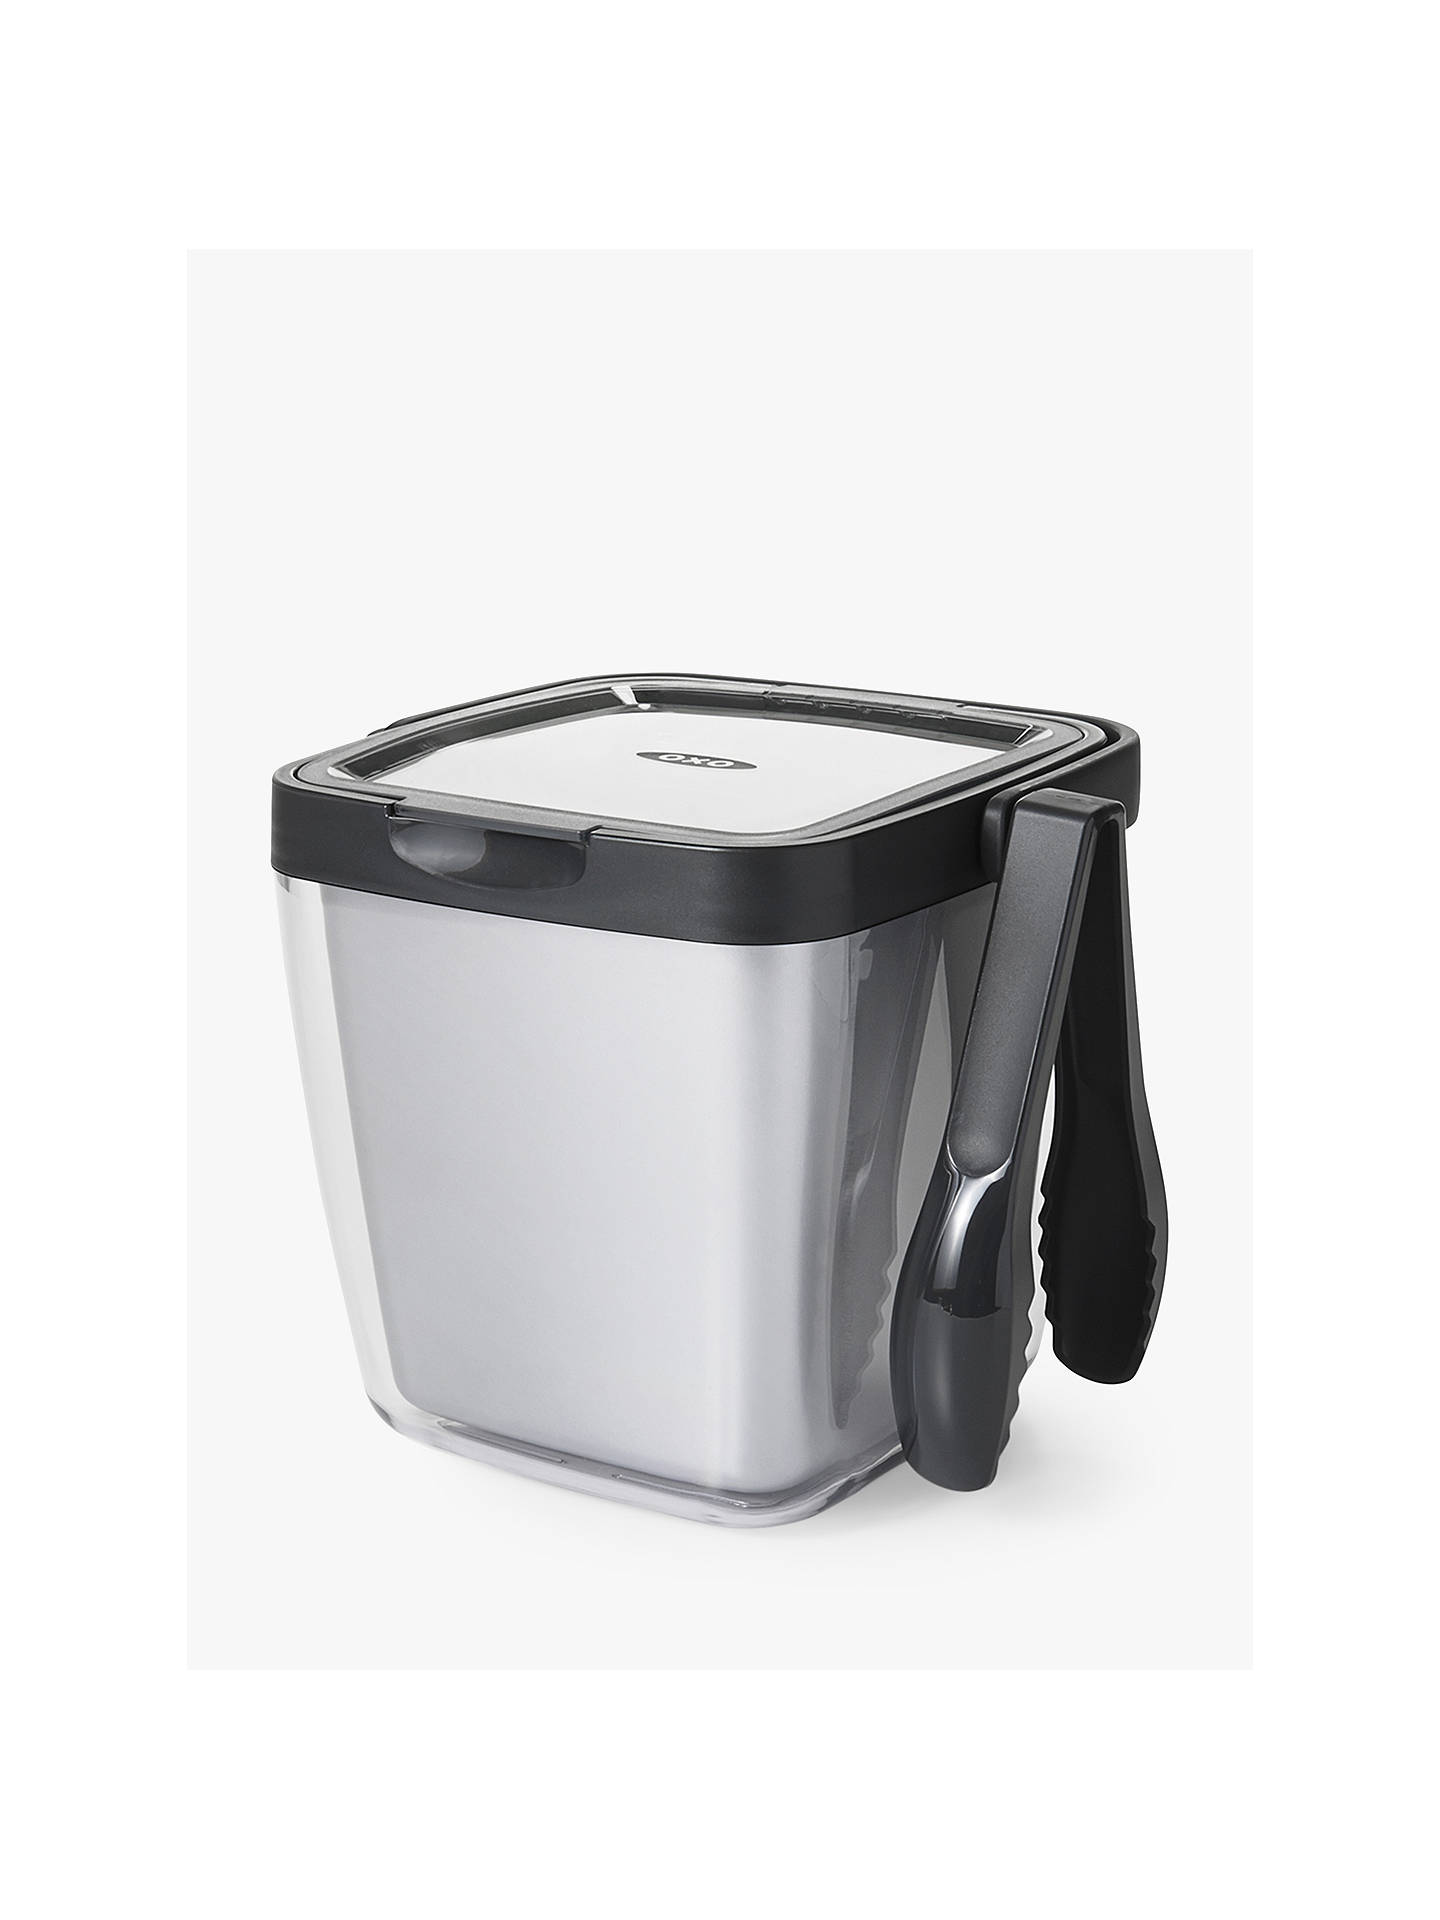 BuyOXO Double Wall Ice Bucket Online at johnlewis.com